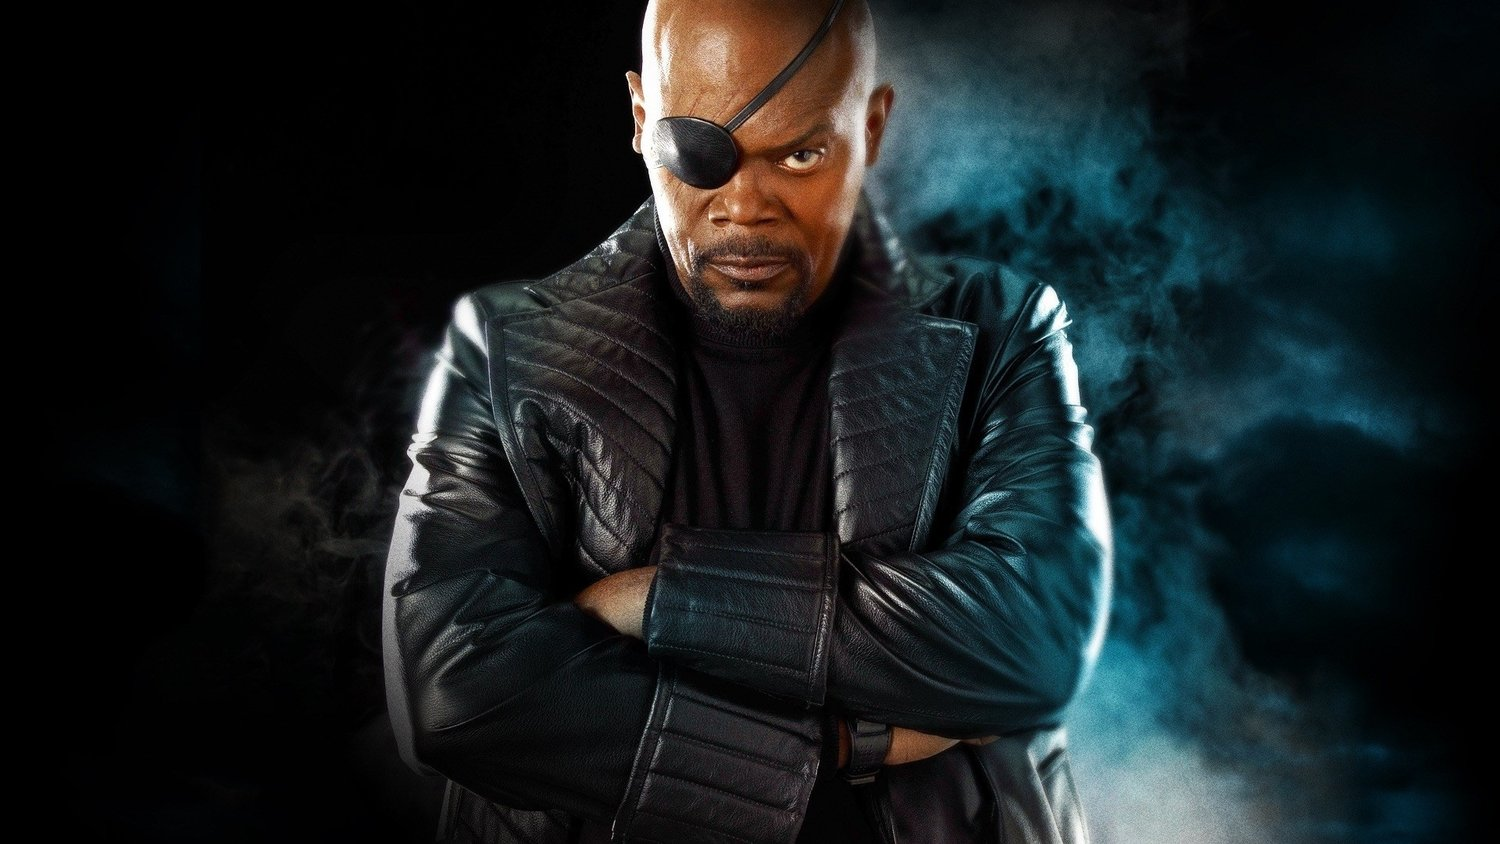 samuel-l-jackson-shows-off-nick-furys-shield-business-card-which-has-a-fun-call-back-to-pulp-fiction-social